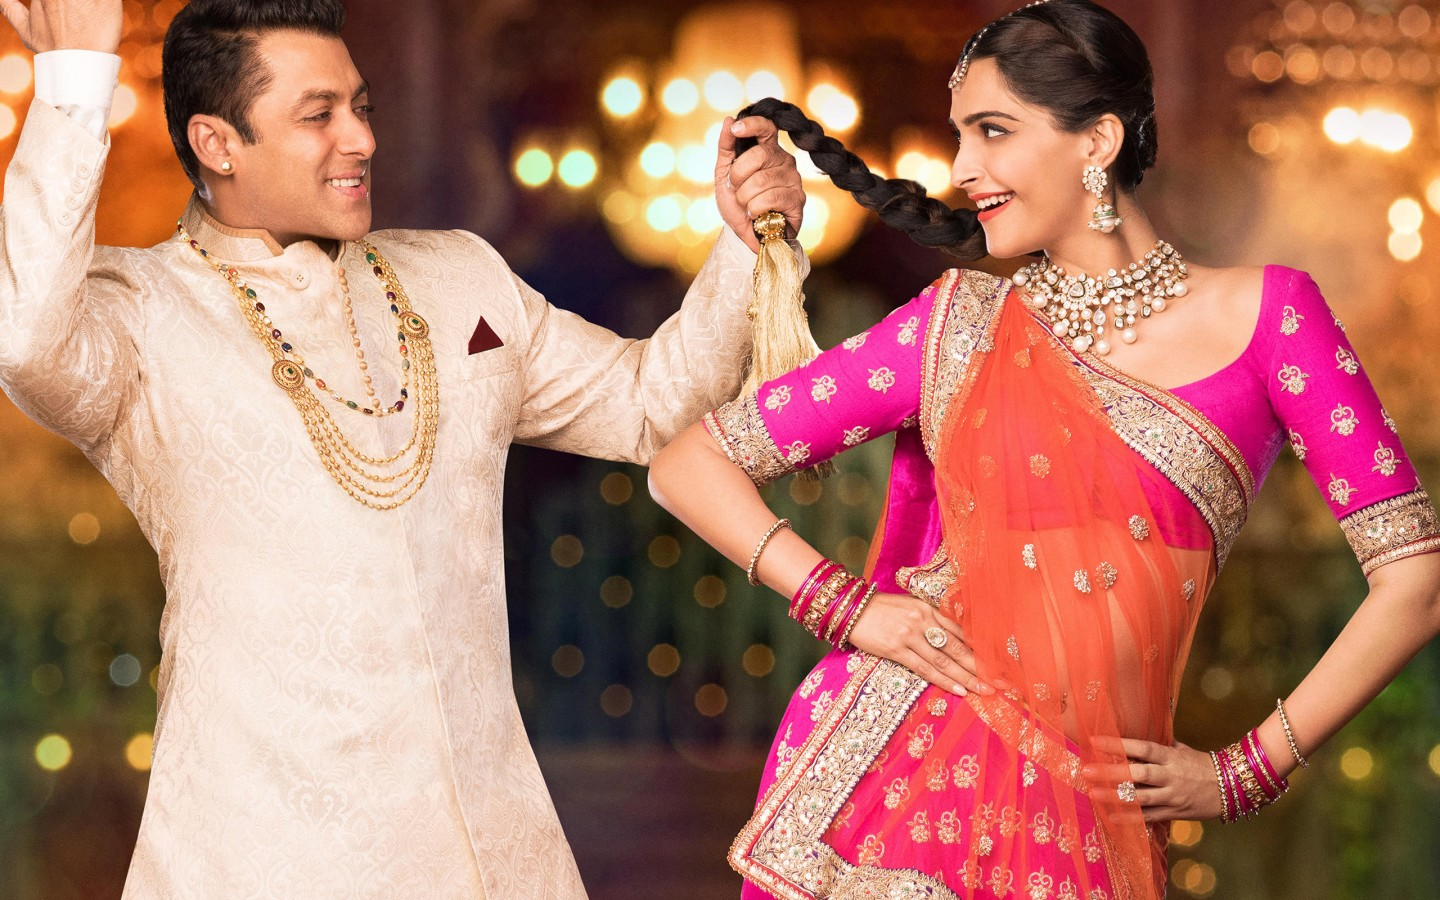 Supreme Iphone X Wallpaper Prem Ratan Dhan Payo Wallpapers Hd Wallpapers Id 16083